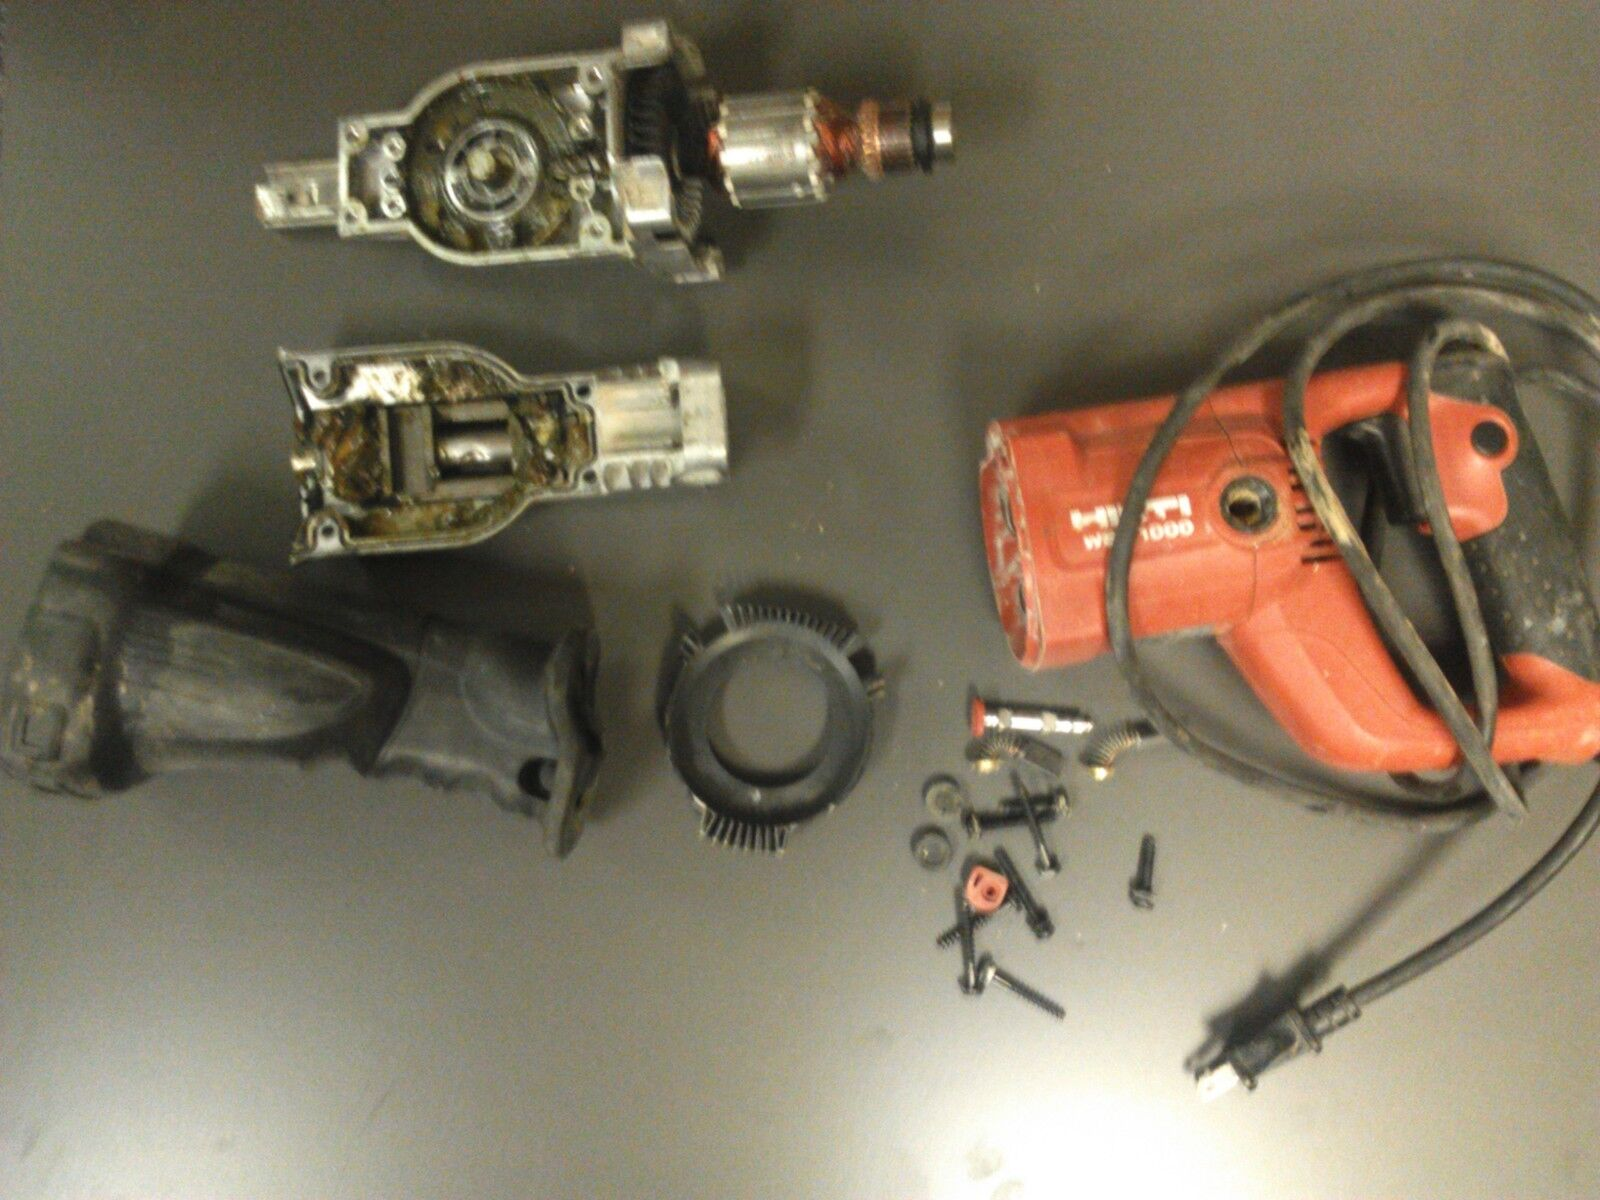 Used ARMATURE AND FAN FOR HILTI WSR1000 RECIP SAW -ENTIRE PICTURE NOT FOR SALE